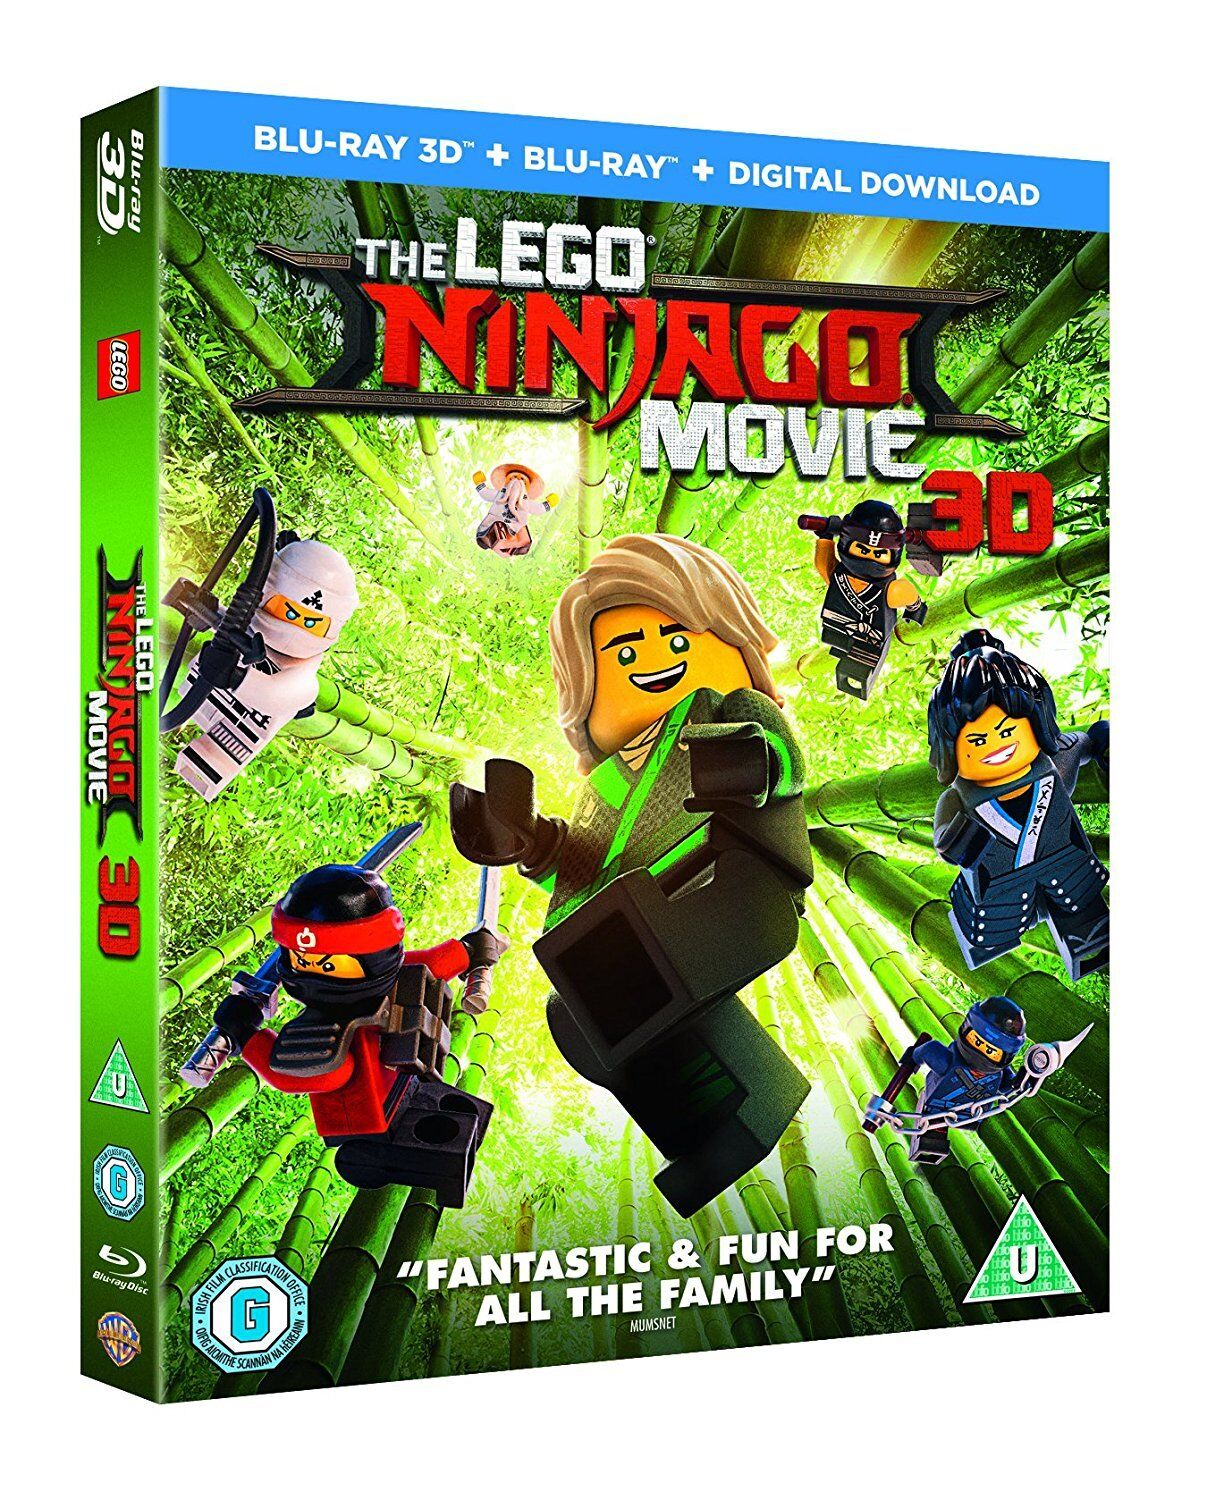 The Lego Ninjago Movie (3D Blu-ray)